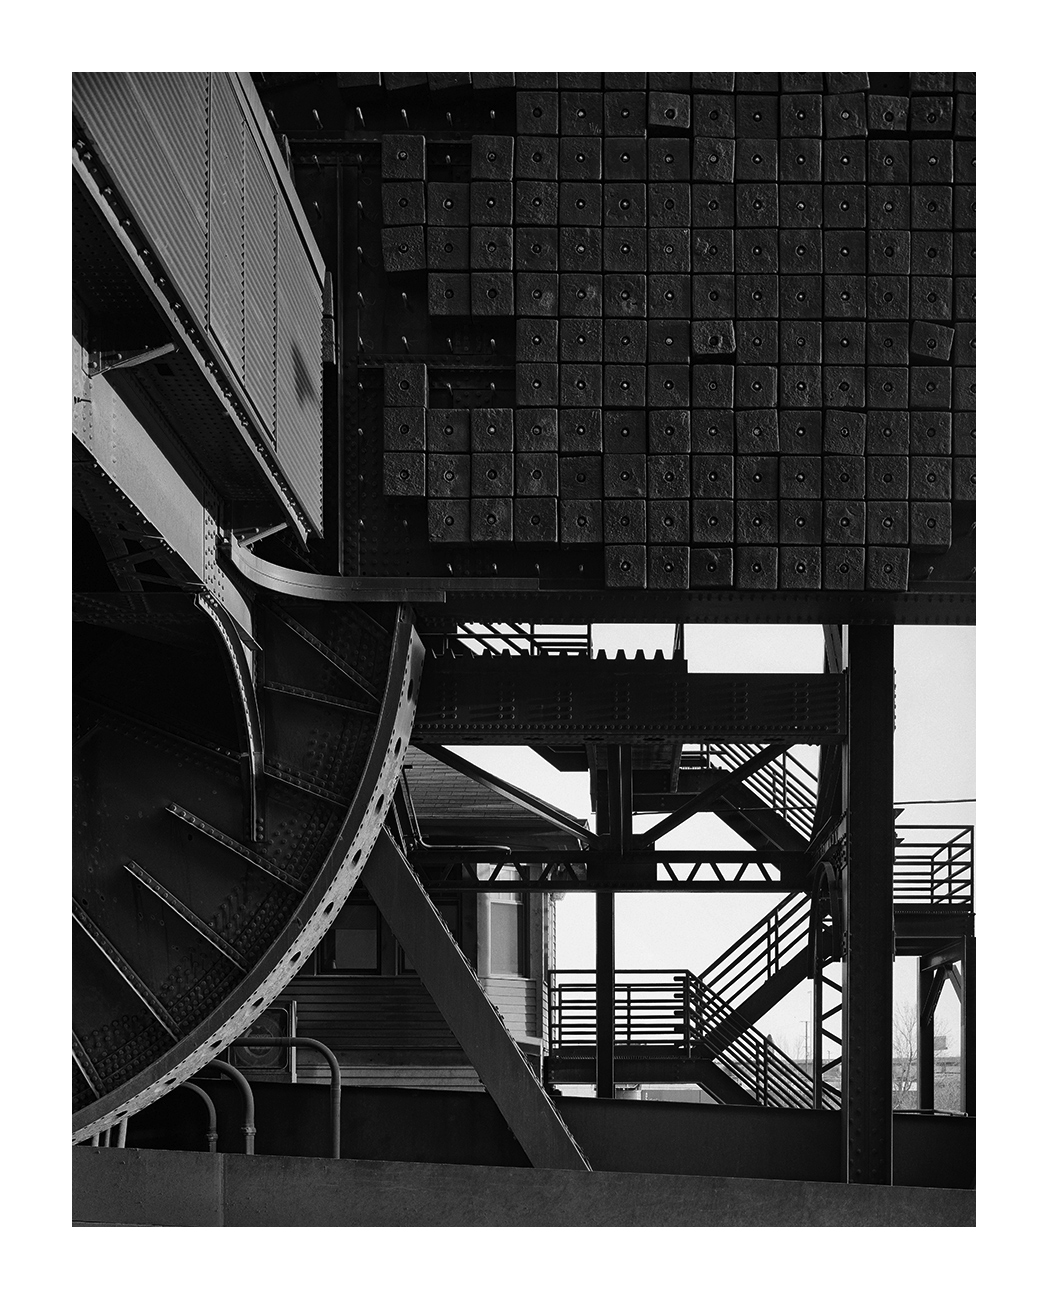 Counterweights, Cermack Ave. Bridge, Chicago 2001